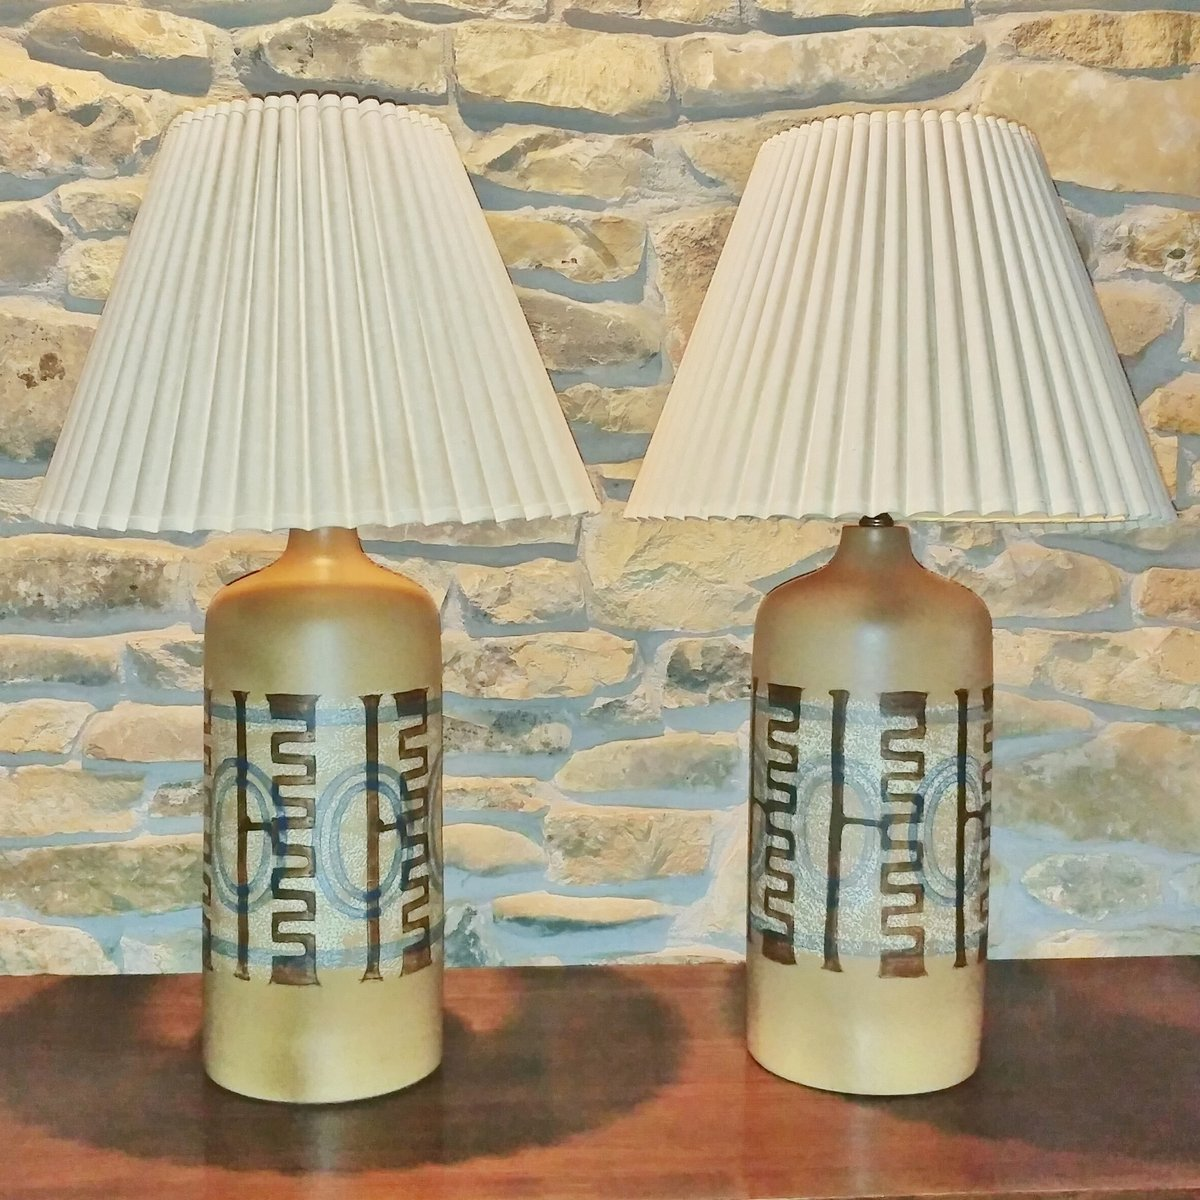 ceramic table lamps by elspeth cohen for lapid pottery works set of 2